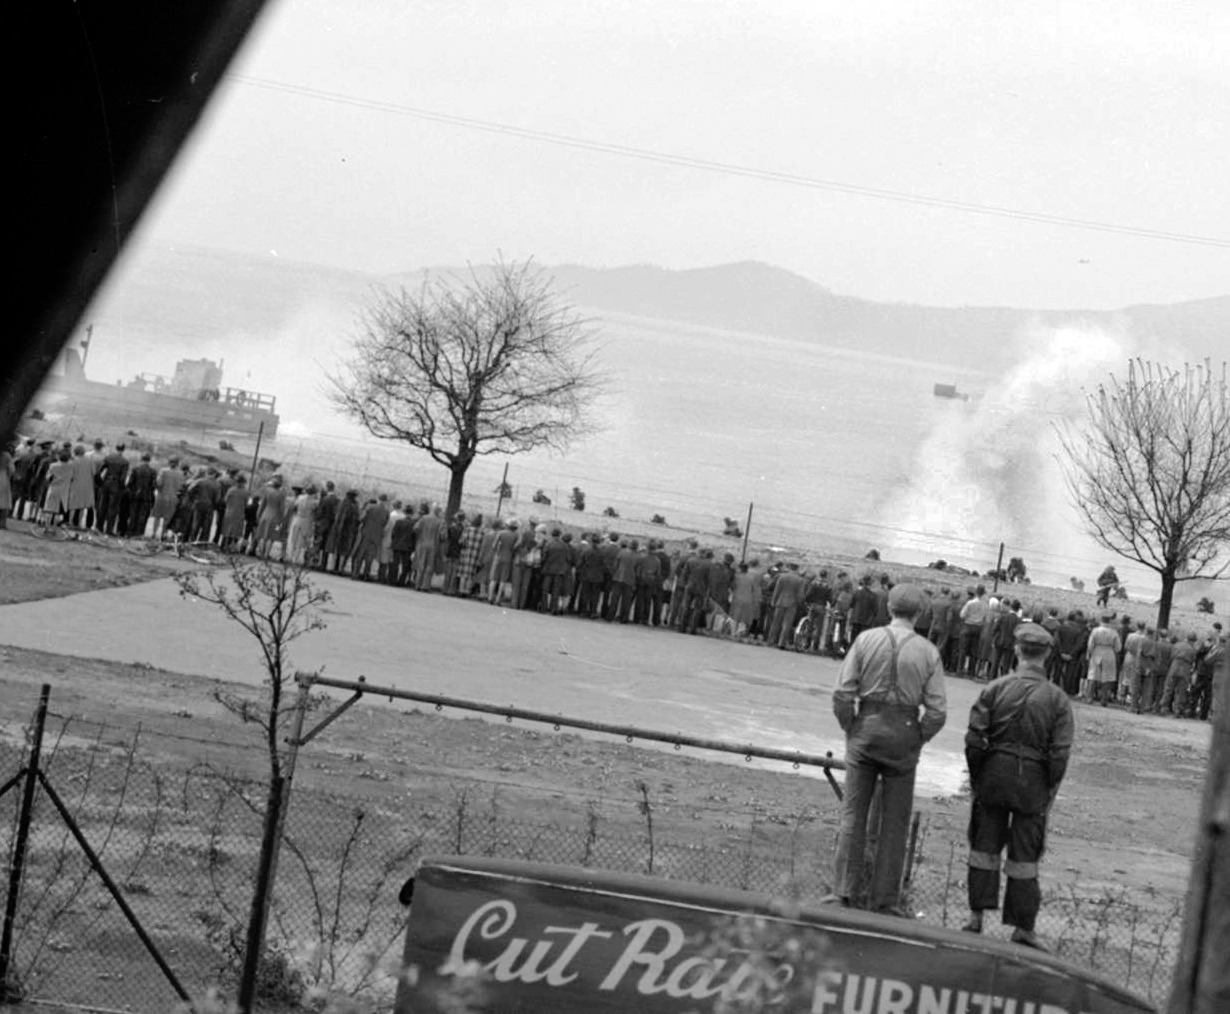 Kits beach commando raid demo, Saturday 1 May 1943 Source: City of Vancouver Archives #Be N34.4